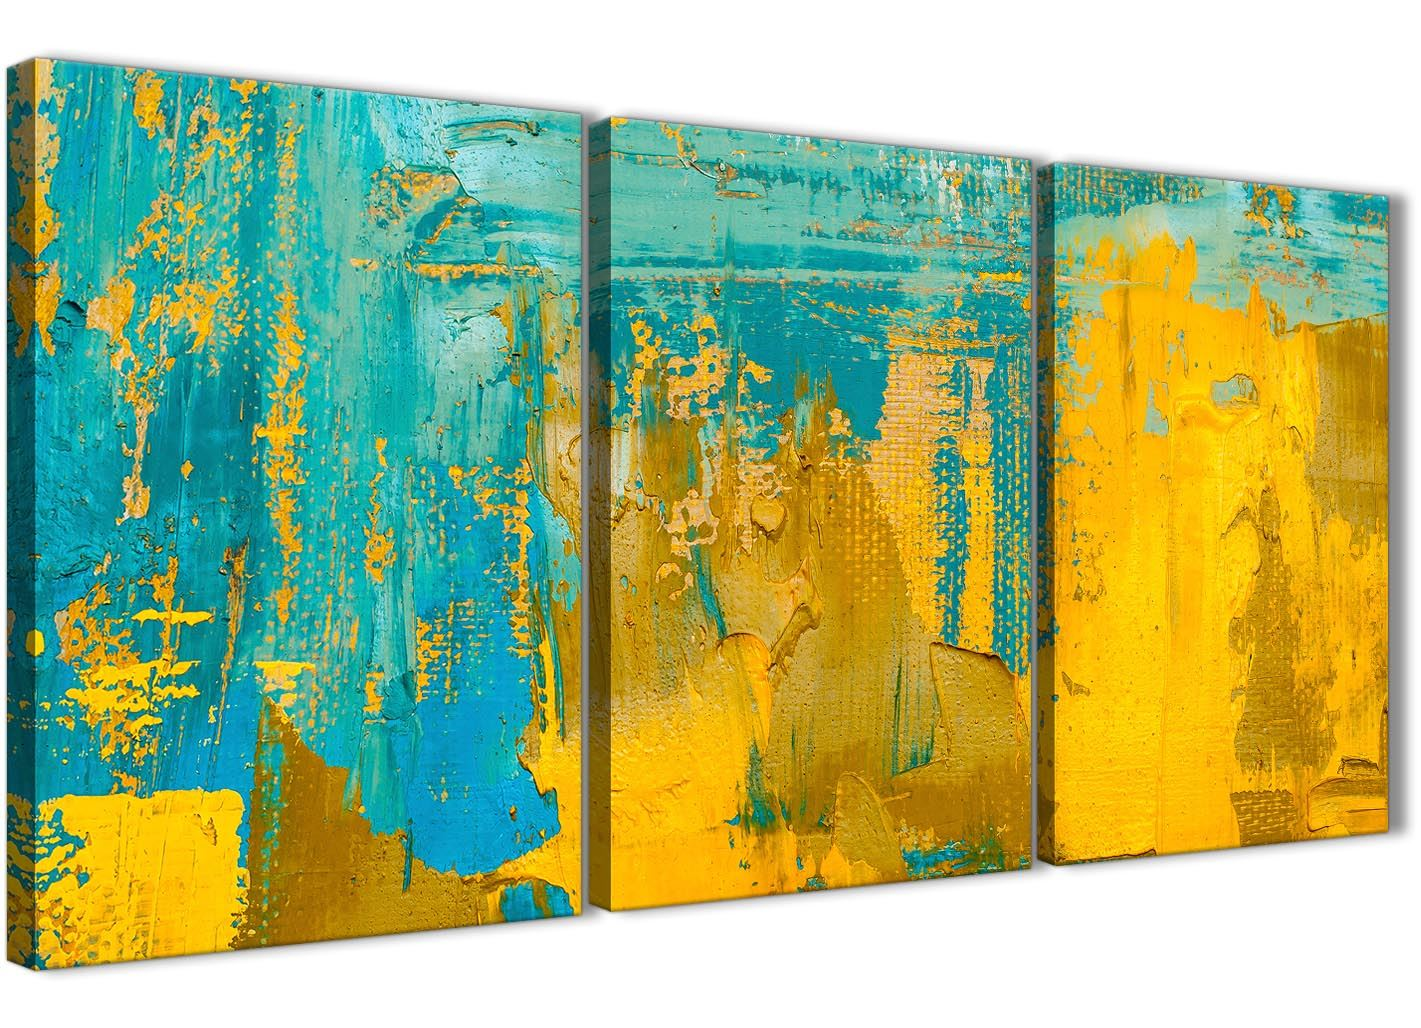 Mustard Yellow and Teal Turquoise - Abstract Dining Room Canvas Wall ...